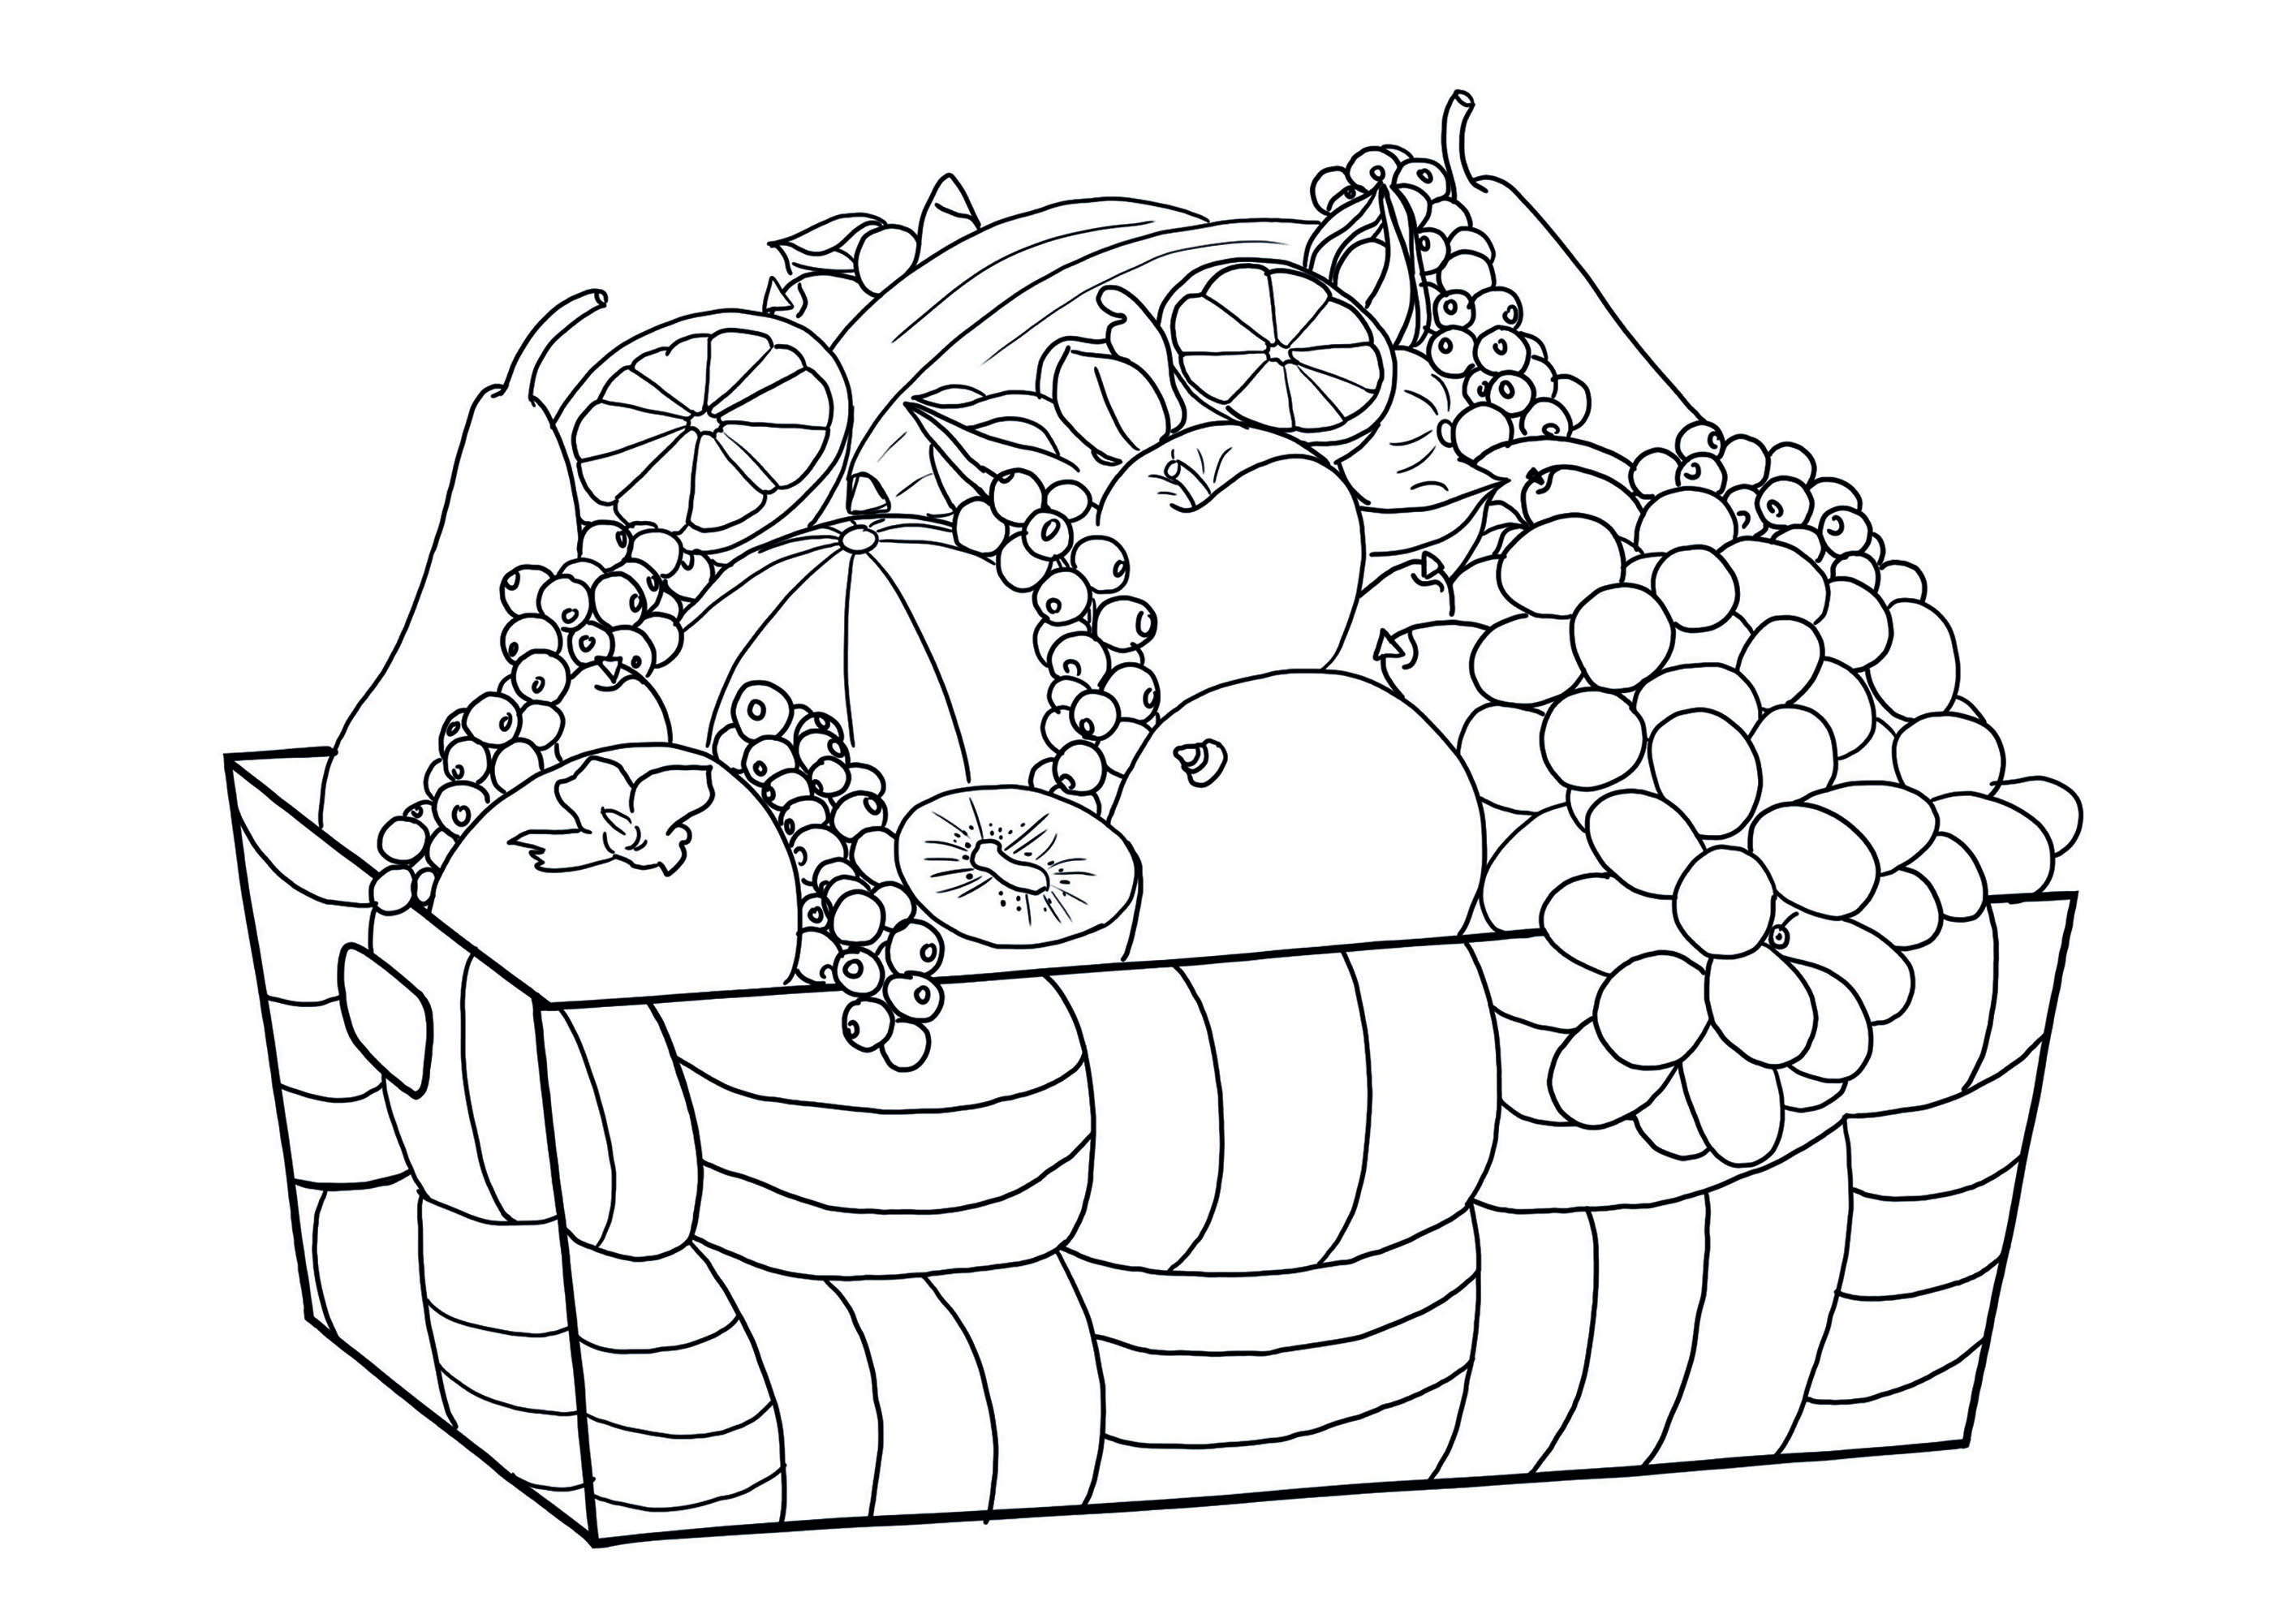 Printable Fruits And Vegetables coloring page to print and color for free